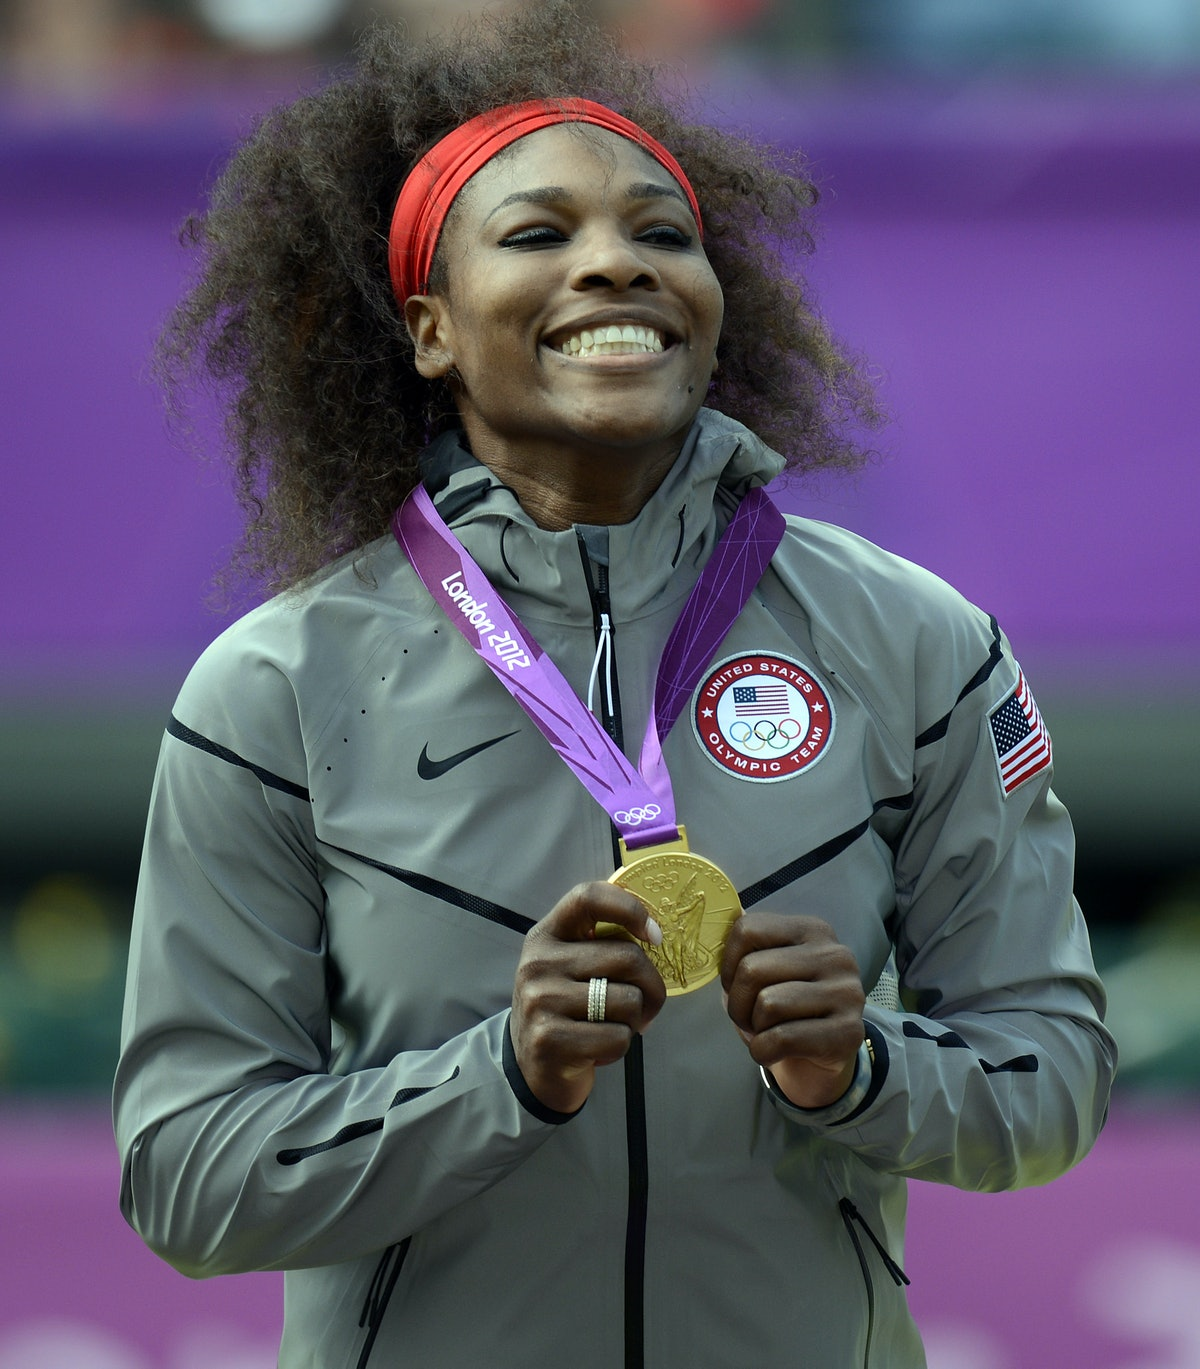 Serena William, shown here donning an Olympic gold medal, is driven to win.